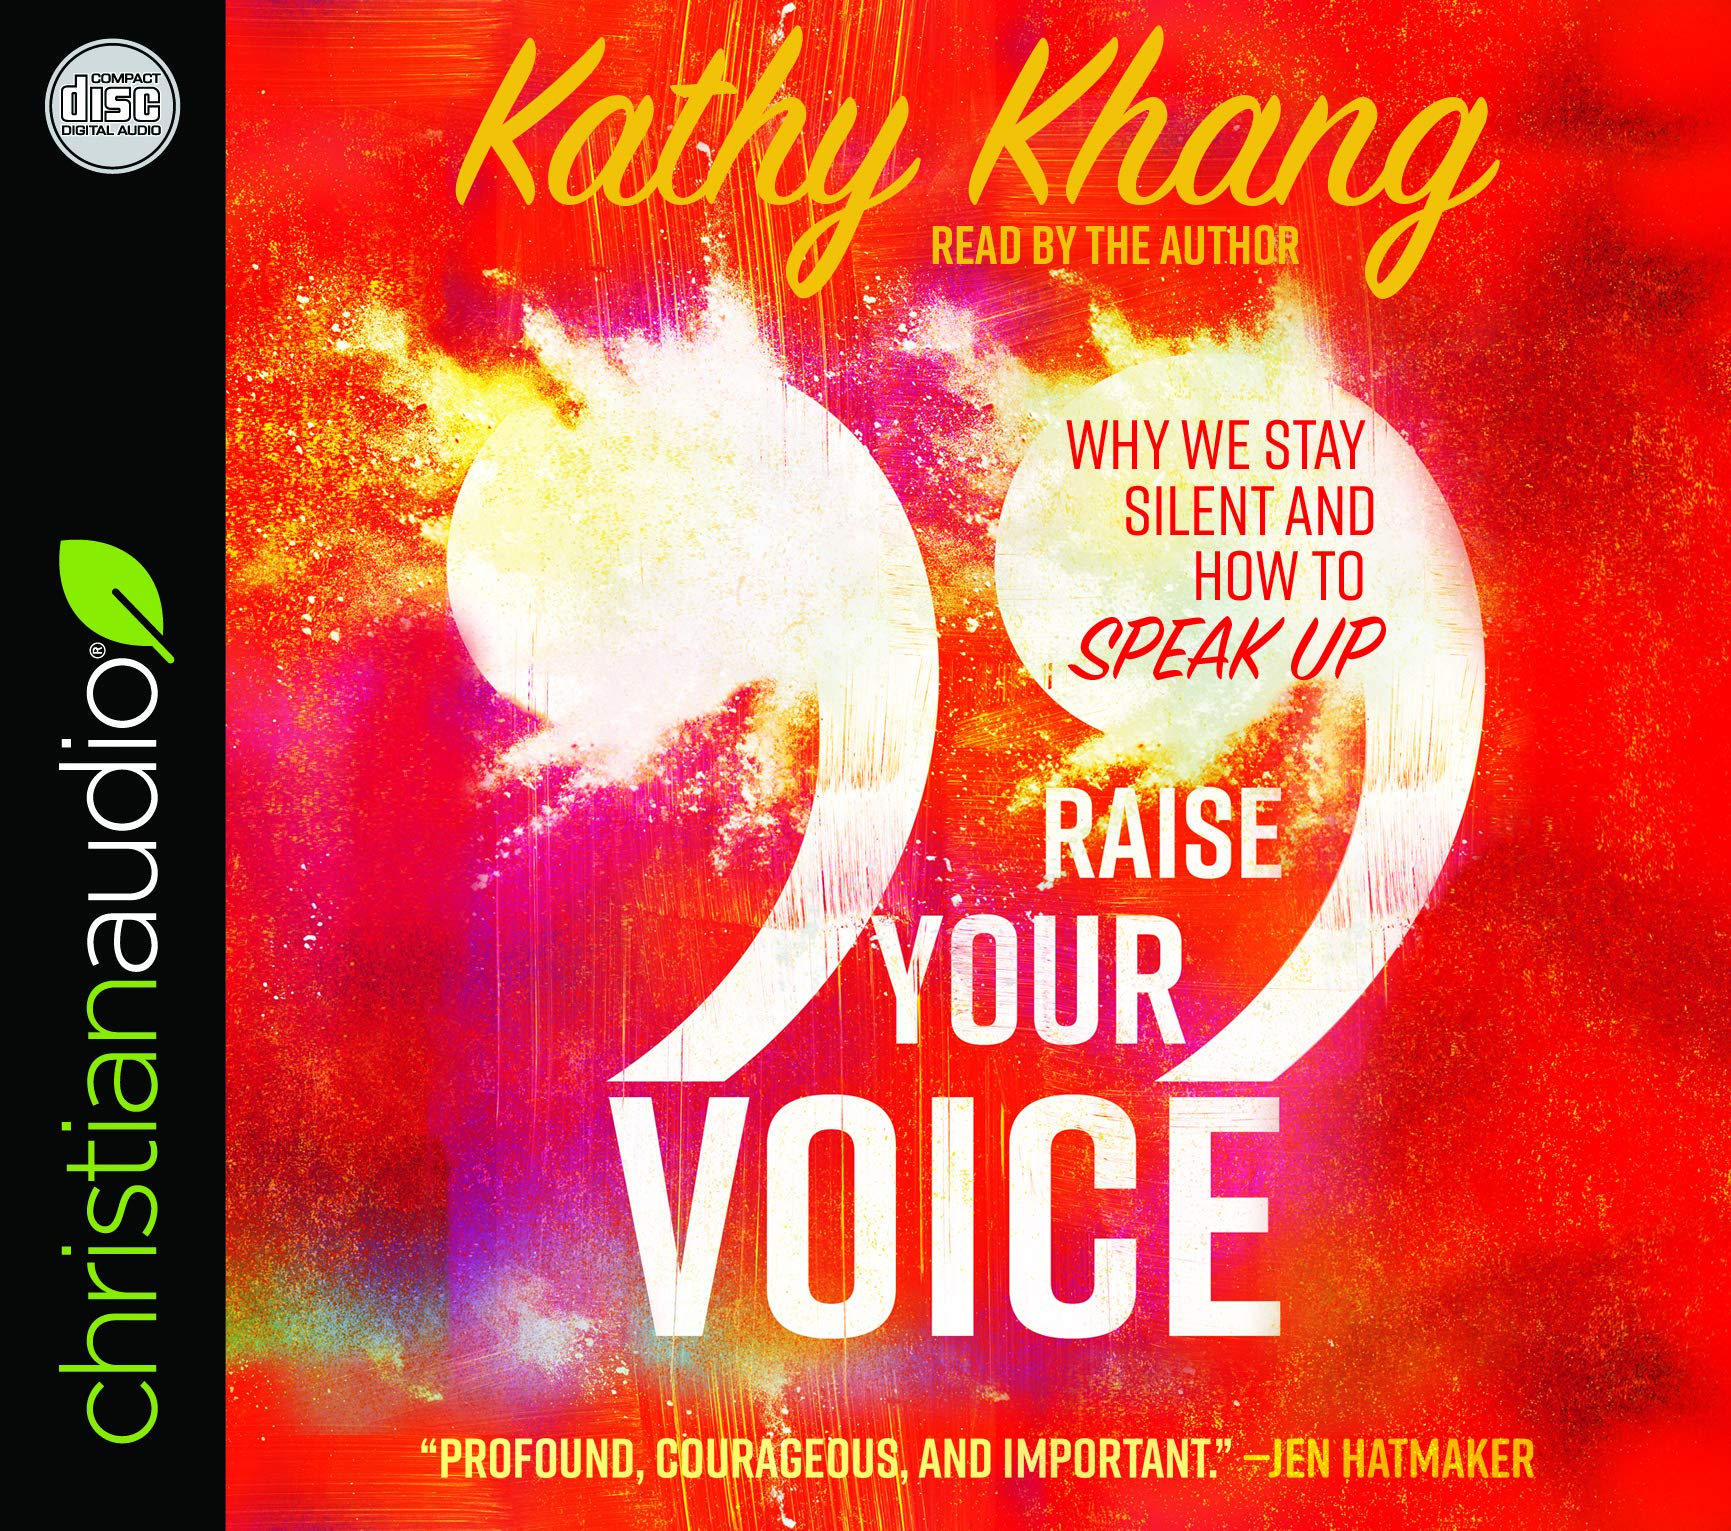 Raise Your Voice: Why We Stay Silent and How to Speak Up: Kathy Khang:  9781545908198: Amazon.com: Books